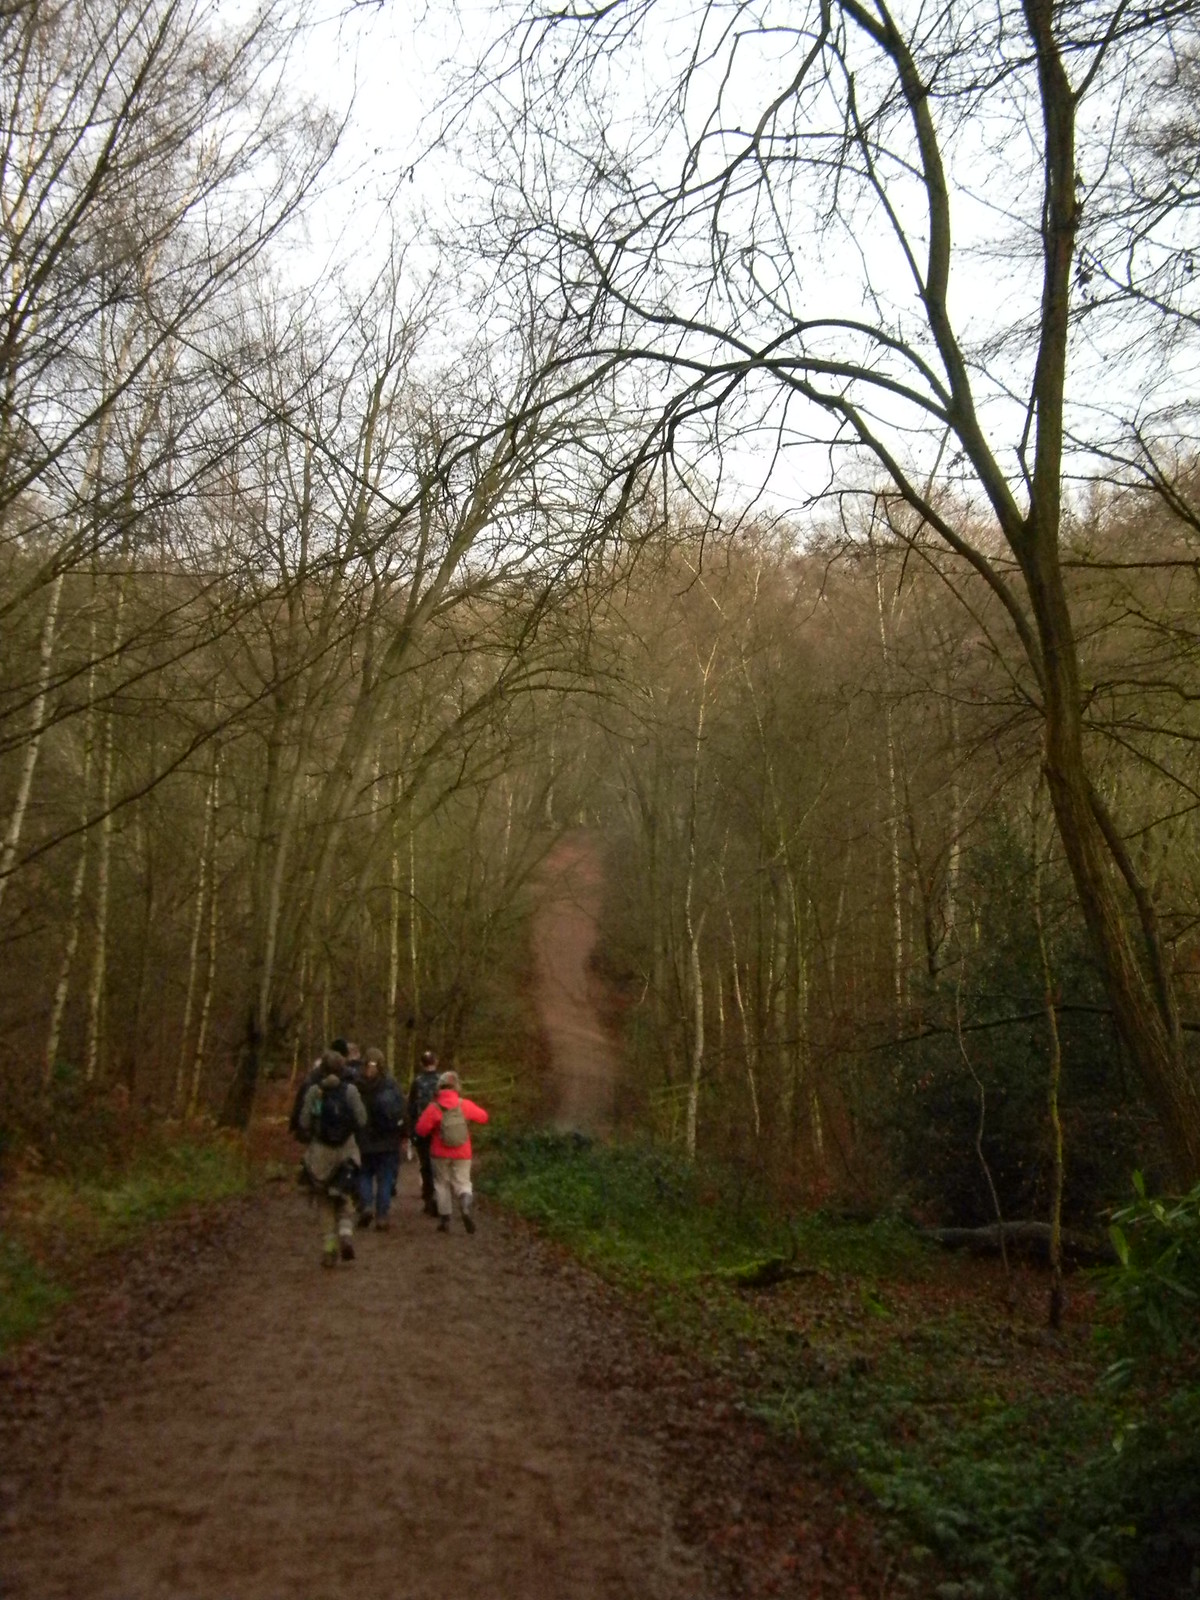 In Epping Forest Loughton to Epping